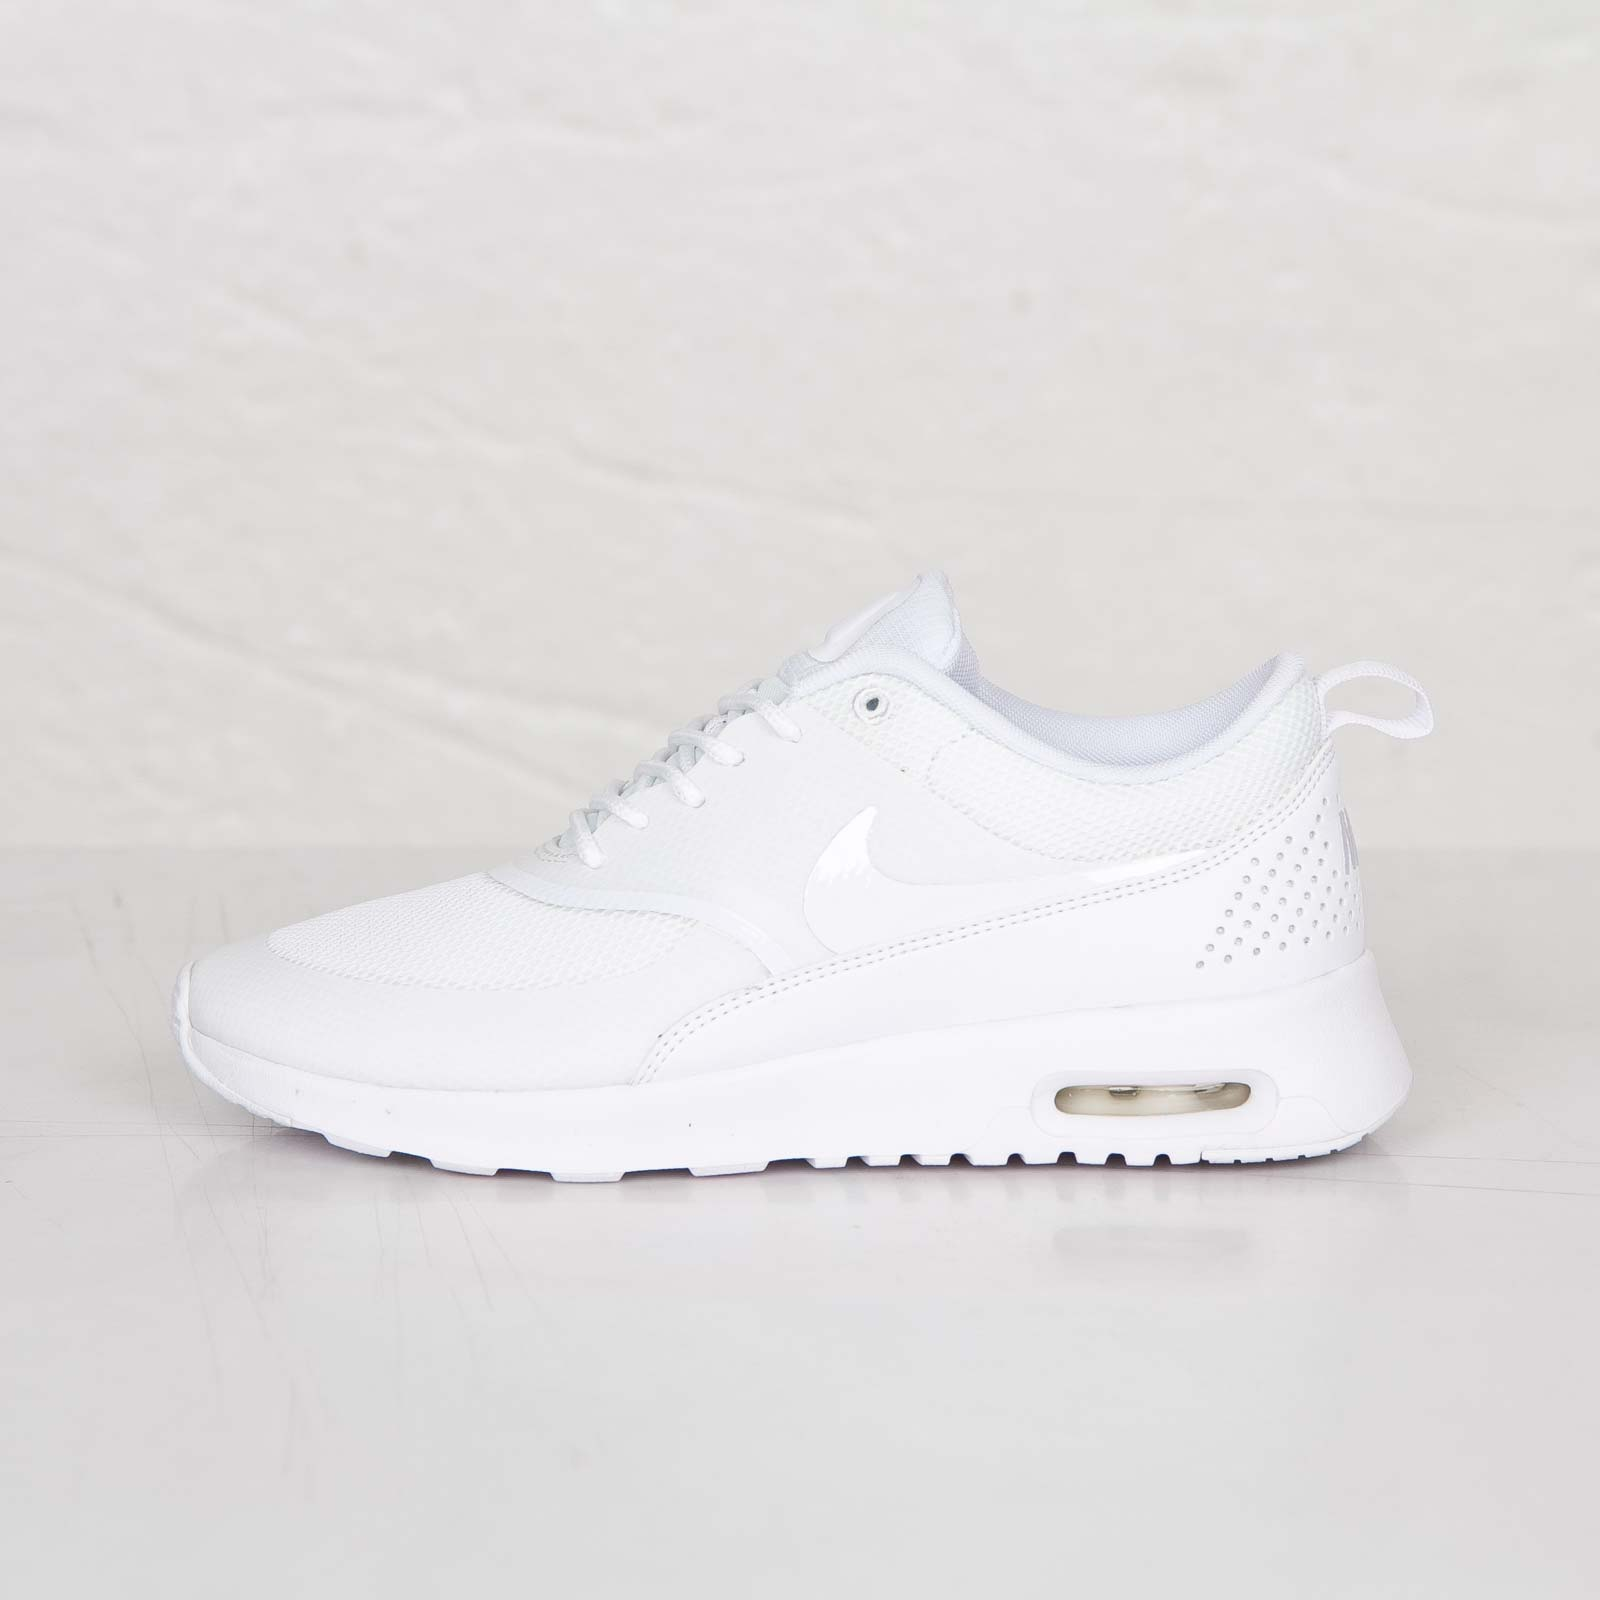 competitive price 34f82 8afcd Nike Wmns Air Max Thea - 599409-101 - Sneakersnstuff   sneakers    streetwear online since 1999